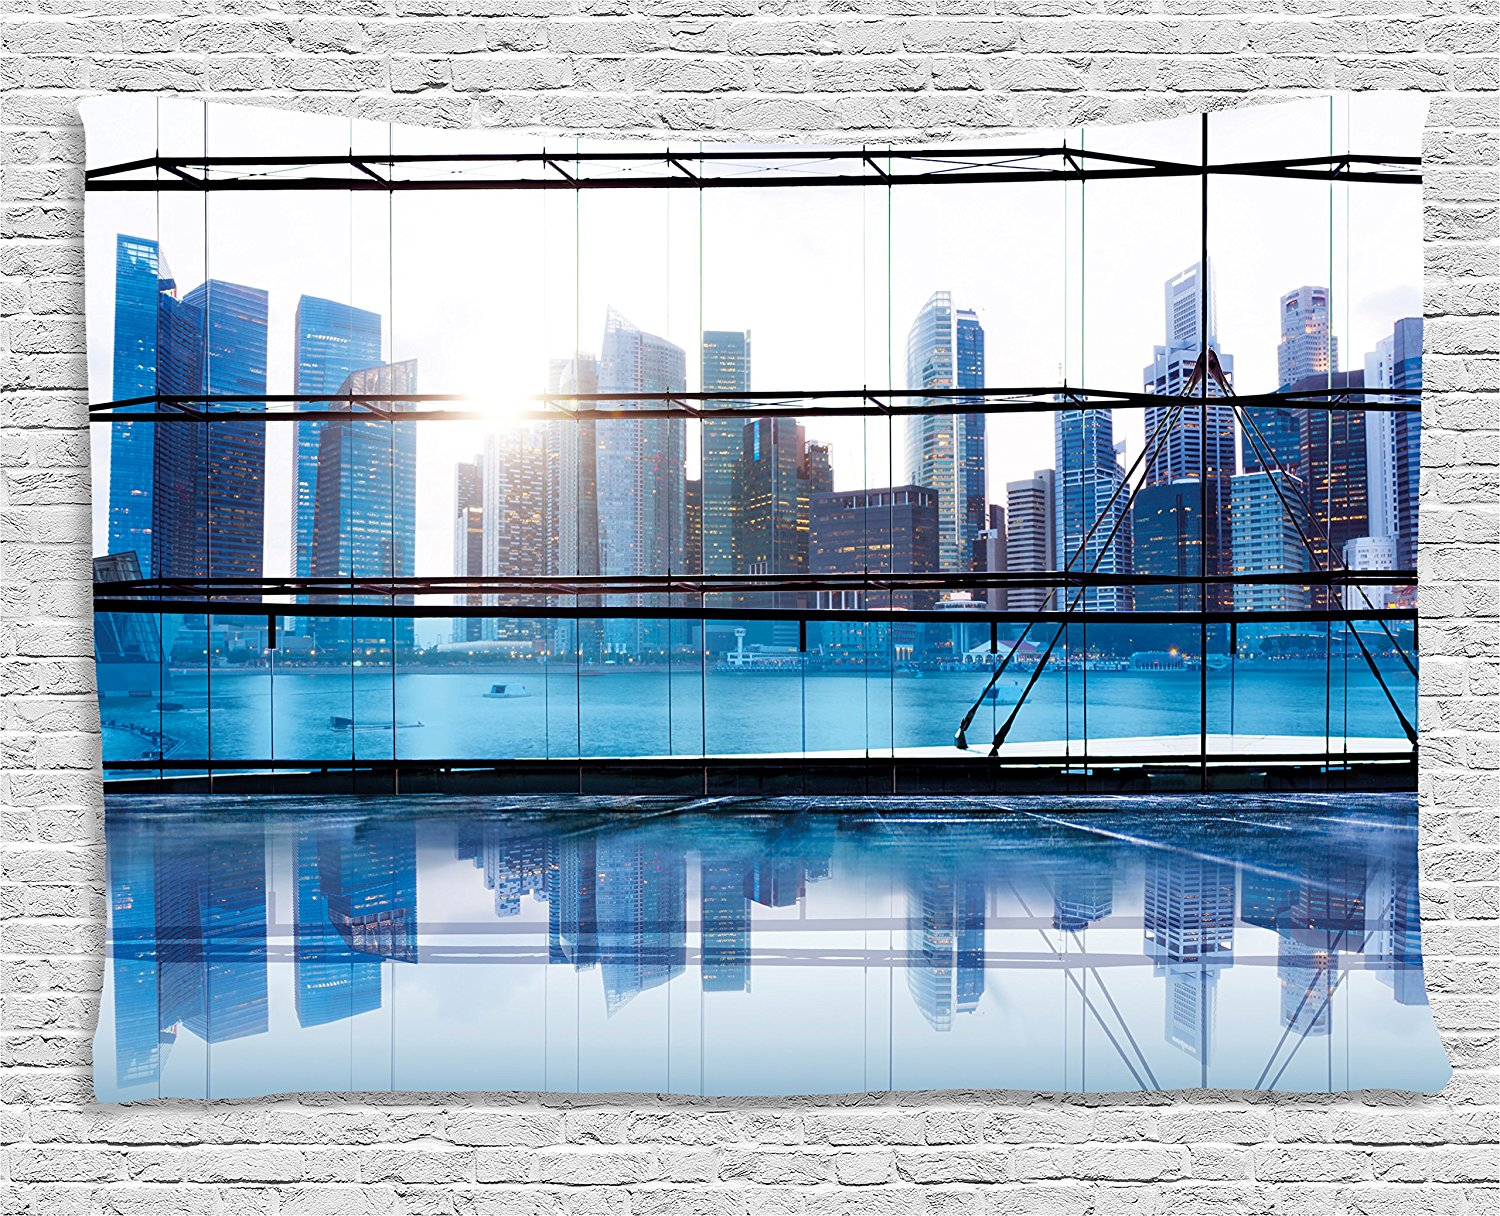 Office Decor Tapestry Urban Cityscape View with Skyscrapers Buildings Image Photo, Wall Hanging for Bedroom